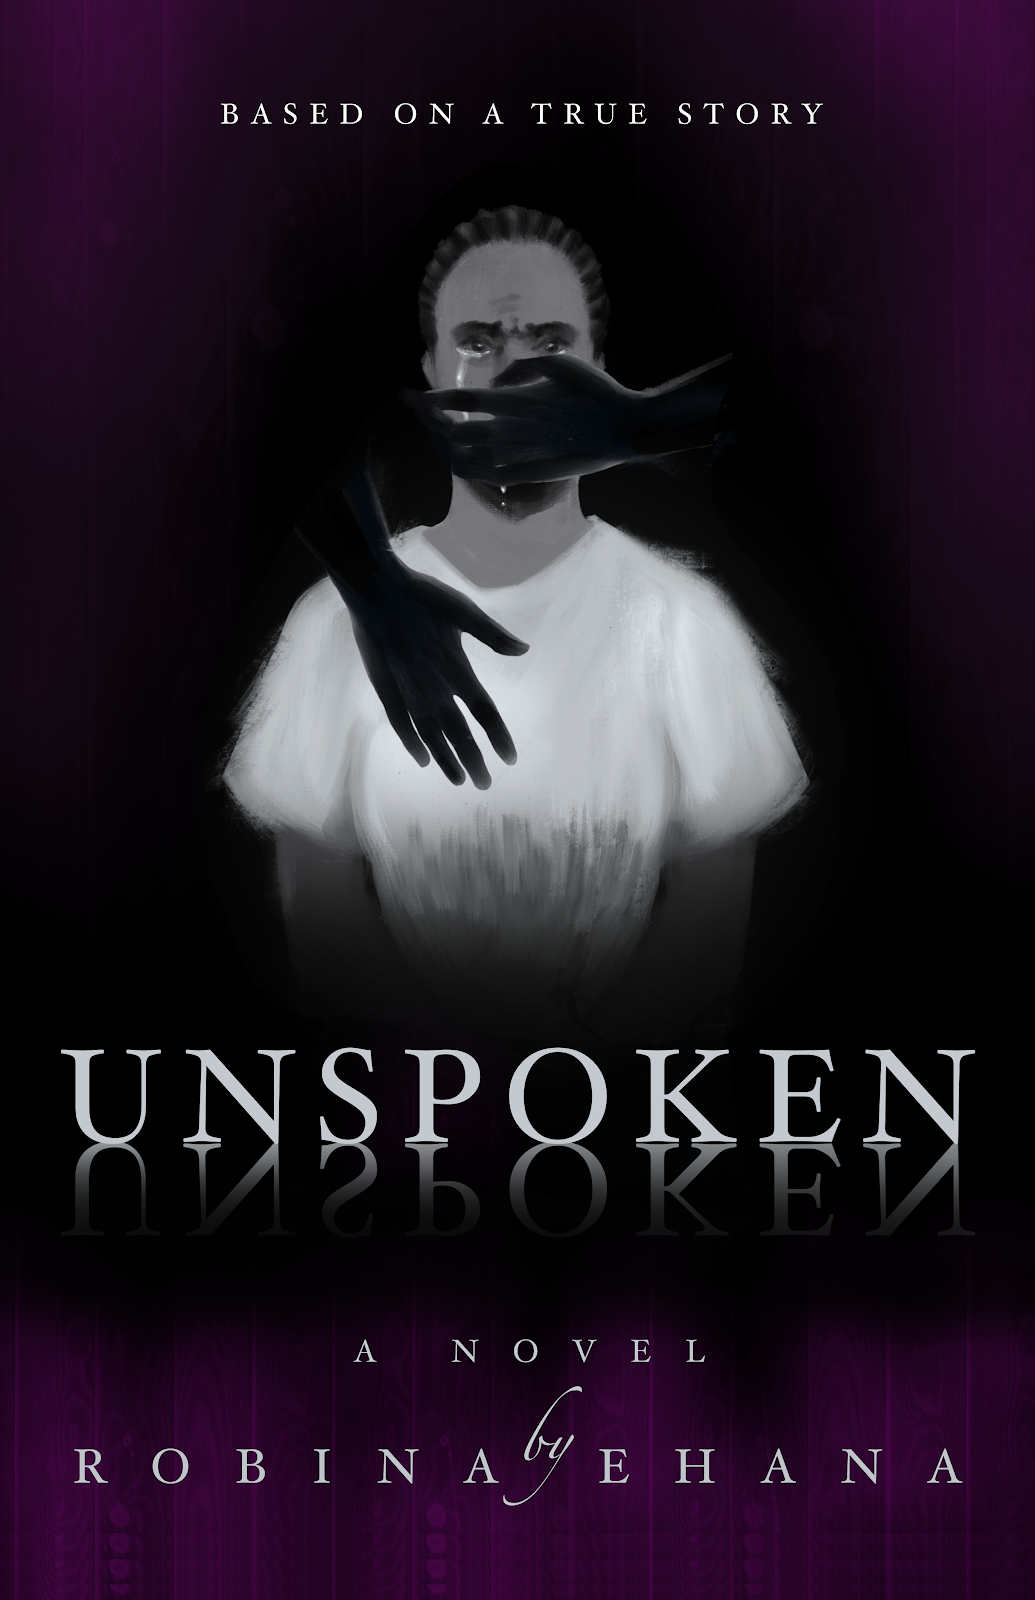 UNSPOKEN Paperback – October 24, 2020 by Robina Elolen Ehana (Author)